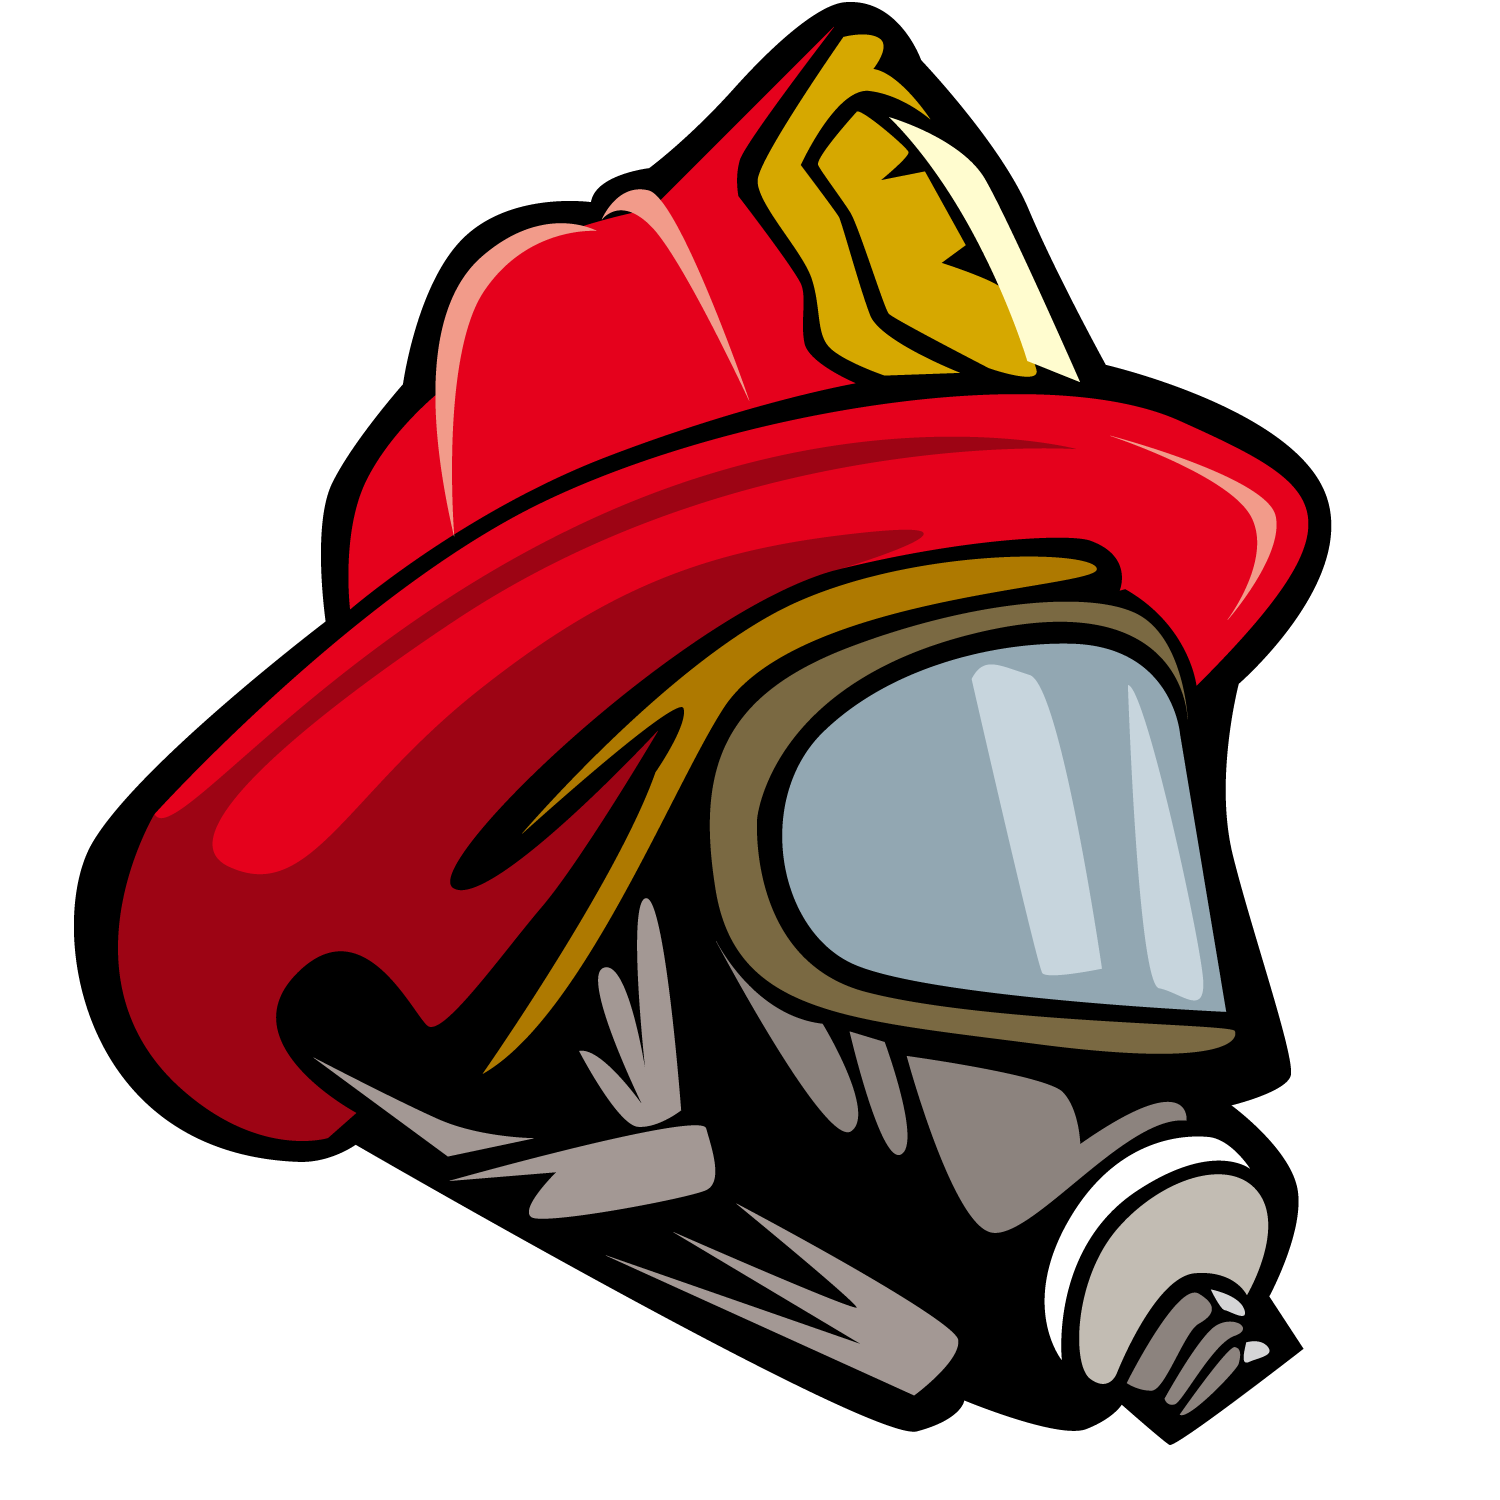 Firefighters helmet Bicycle helmet Clip art.